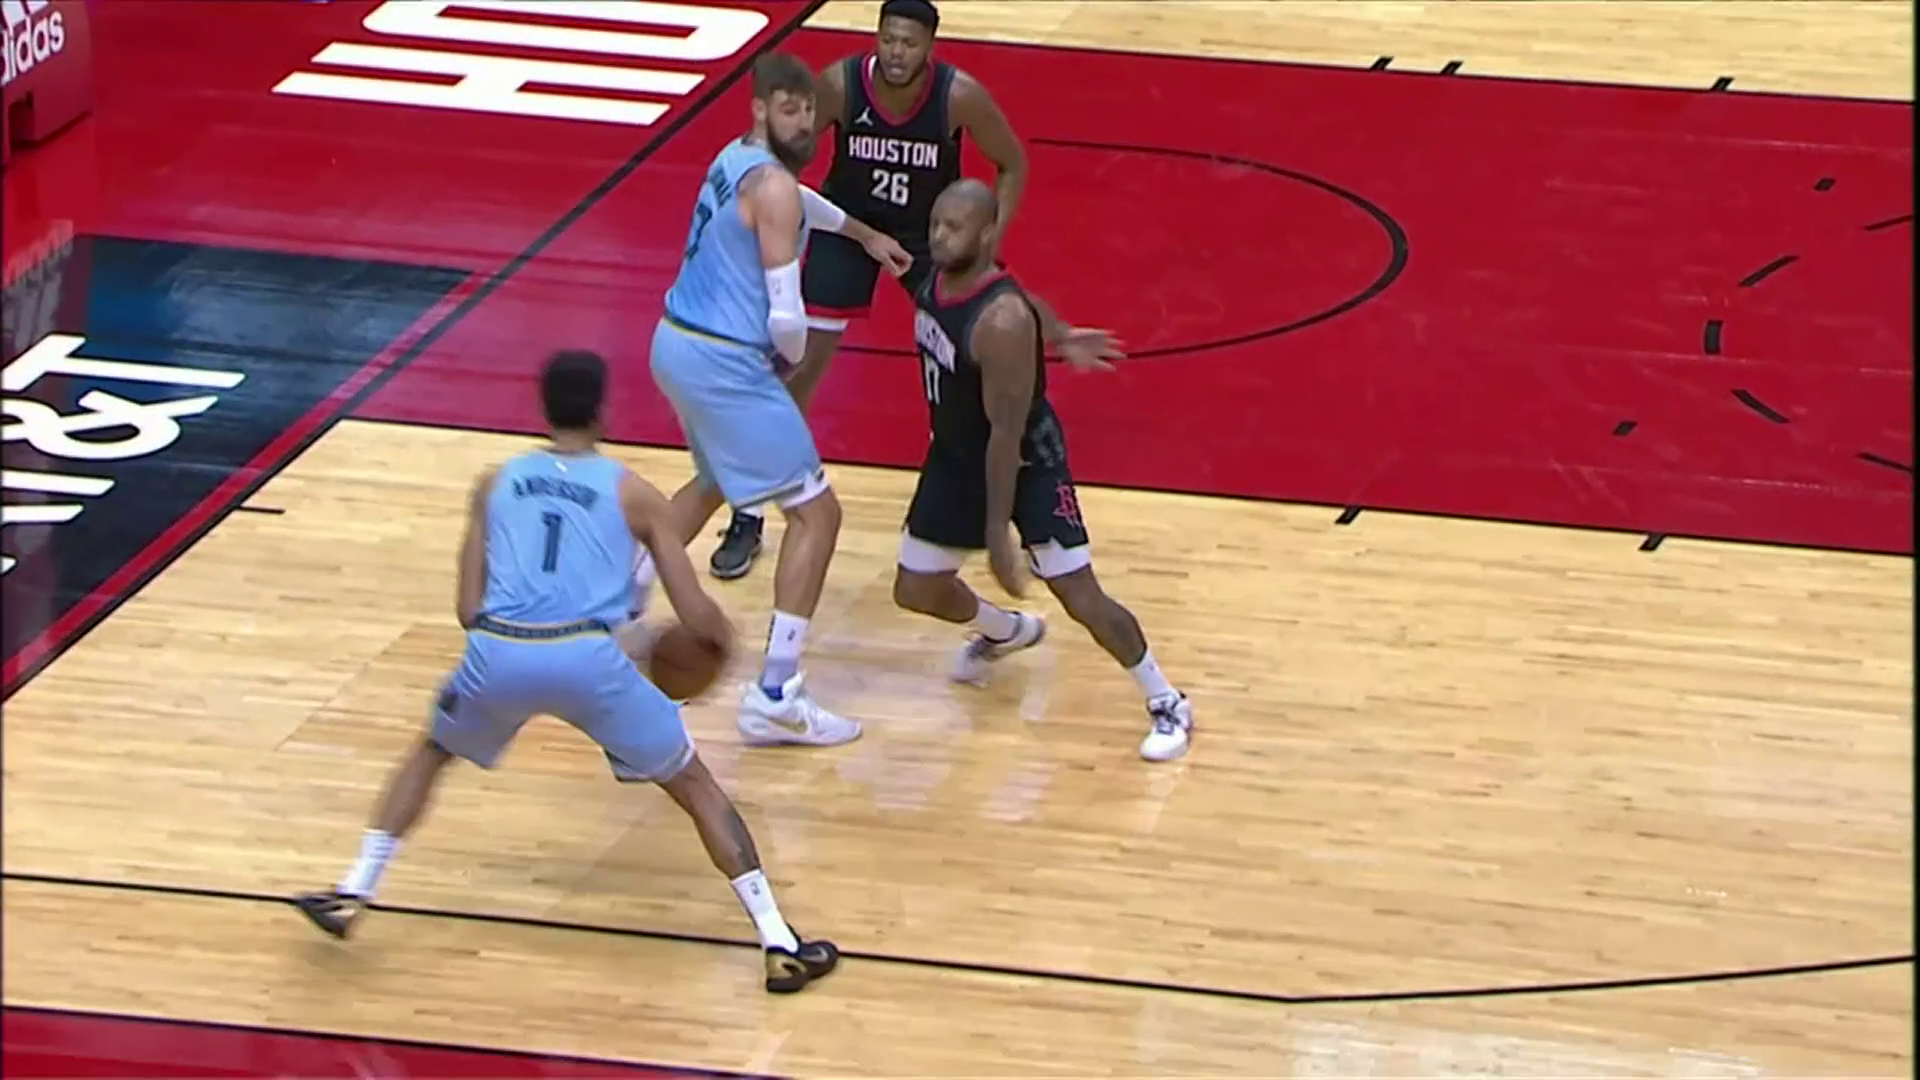 Kyle Anderson cleans up the rim with a powerful jam